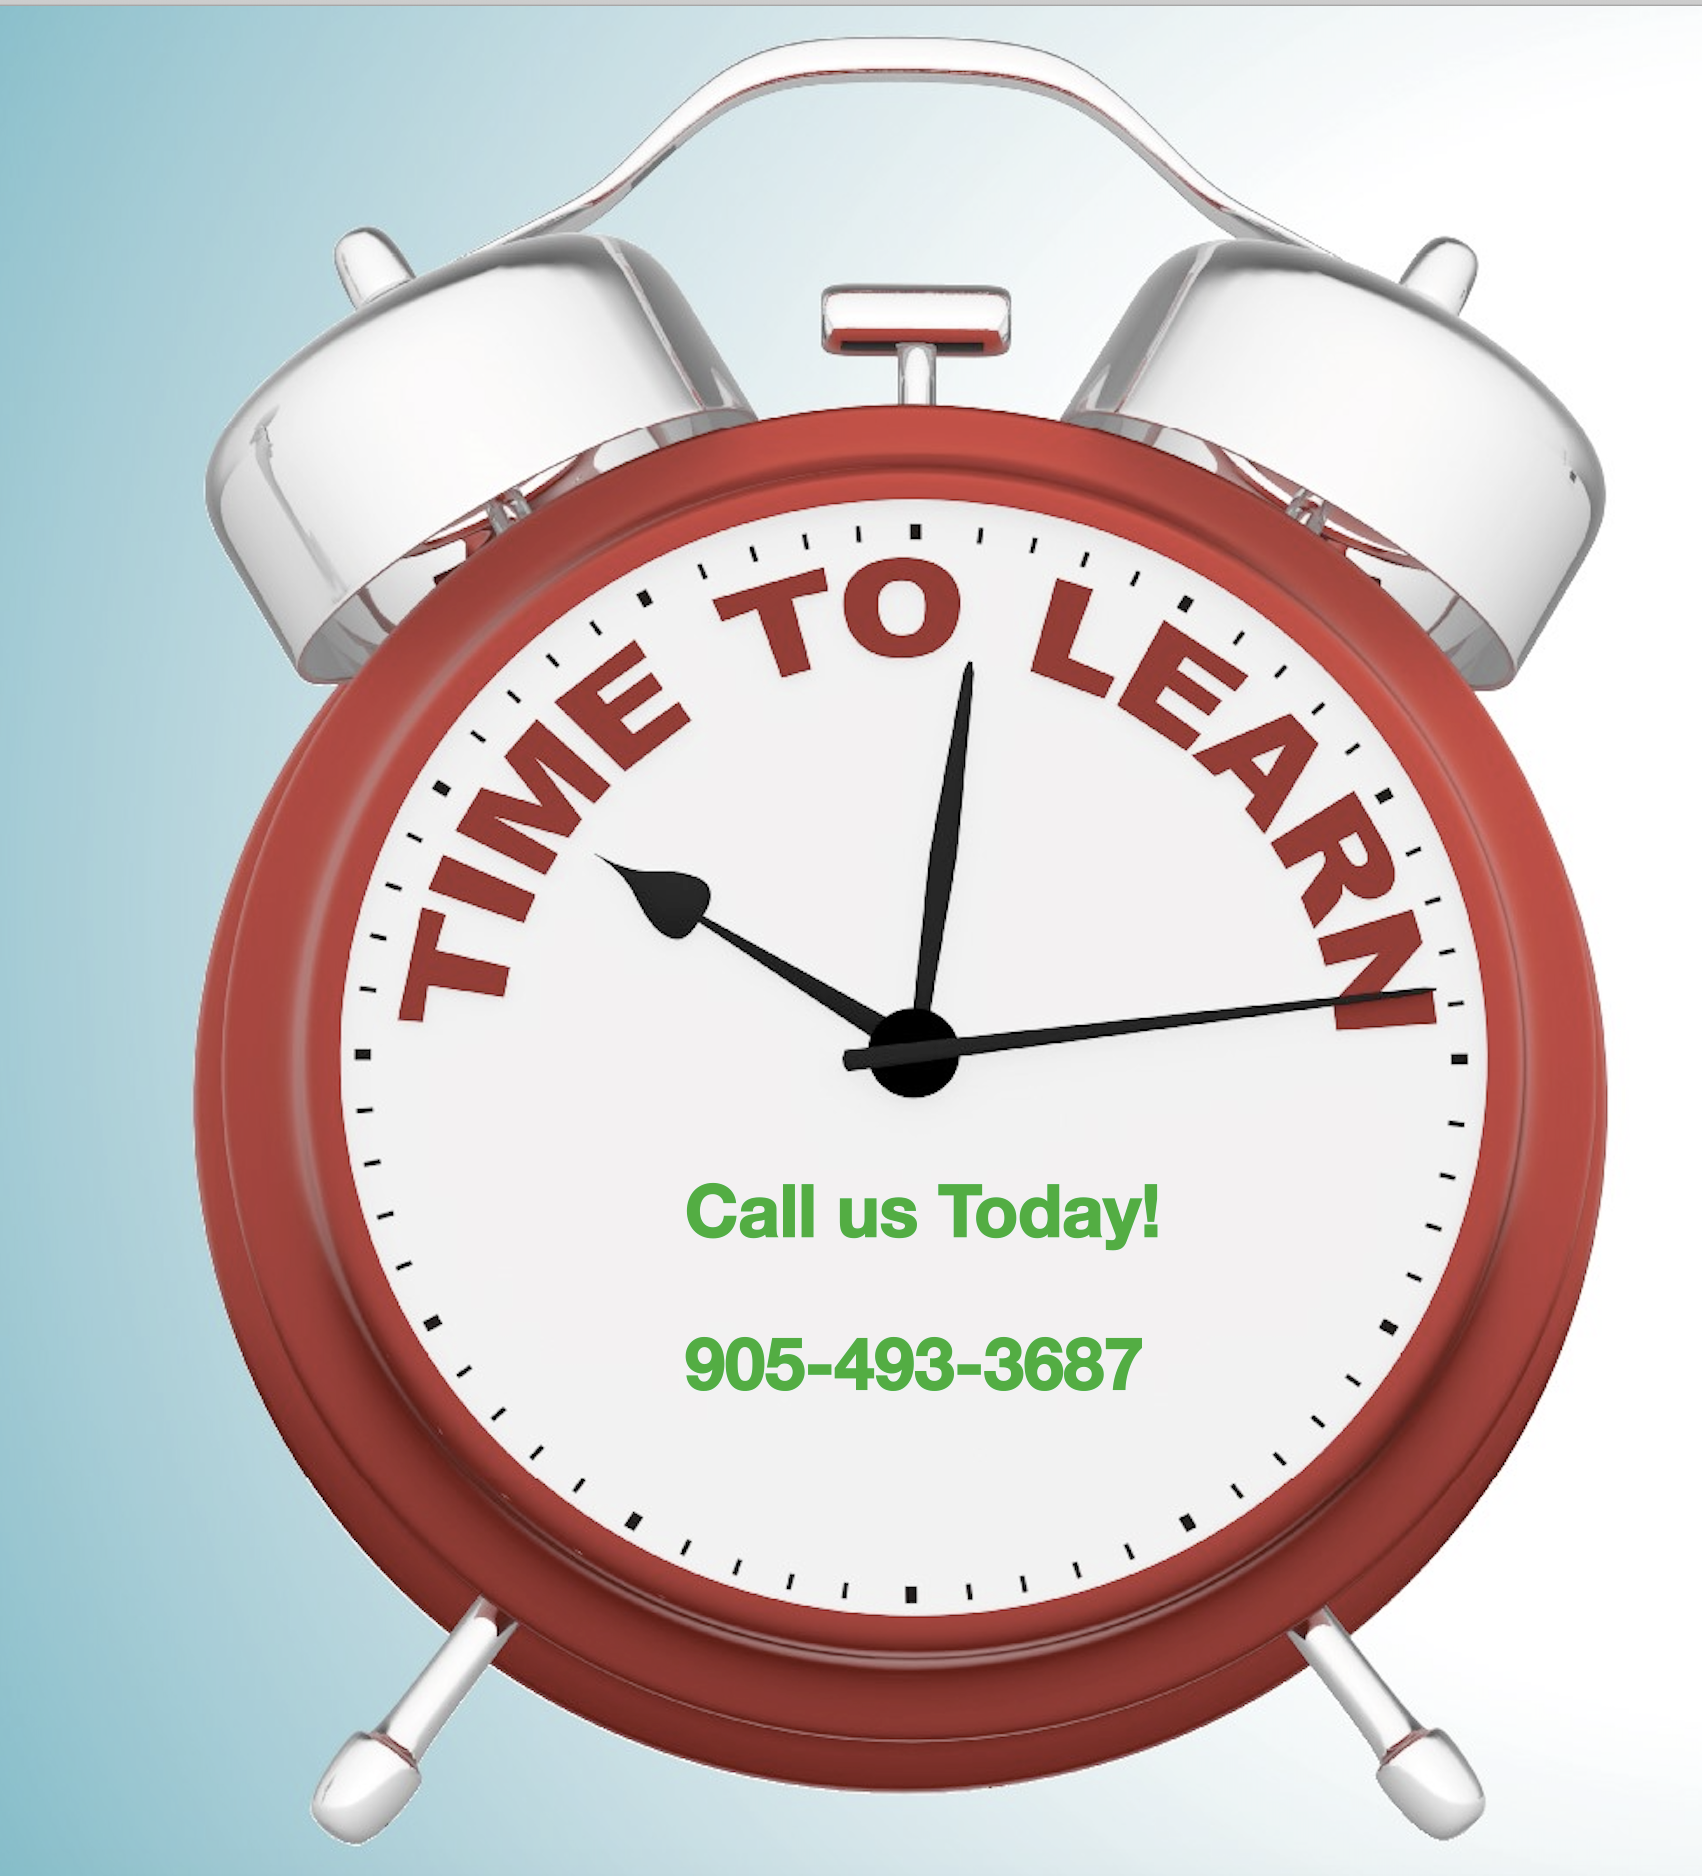 ClubZ! In-Home Tutoring of Whitby Ajax Oshawa & Surrounding Areas